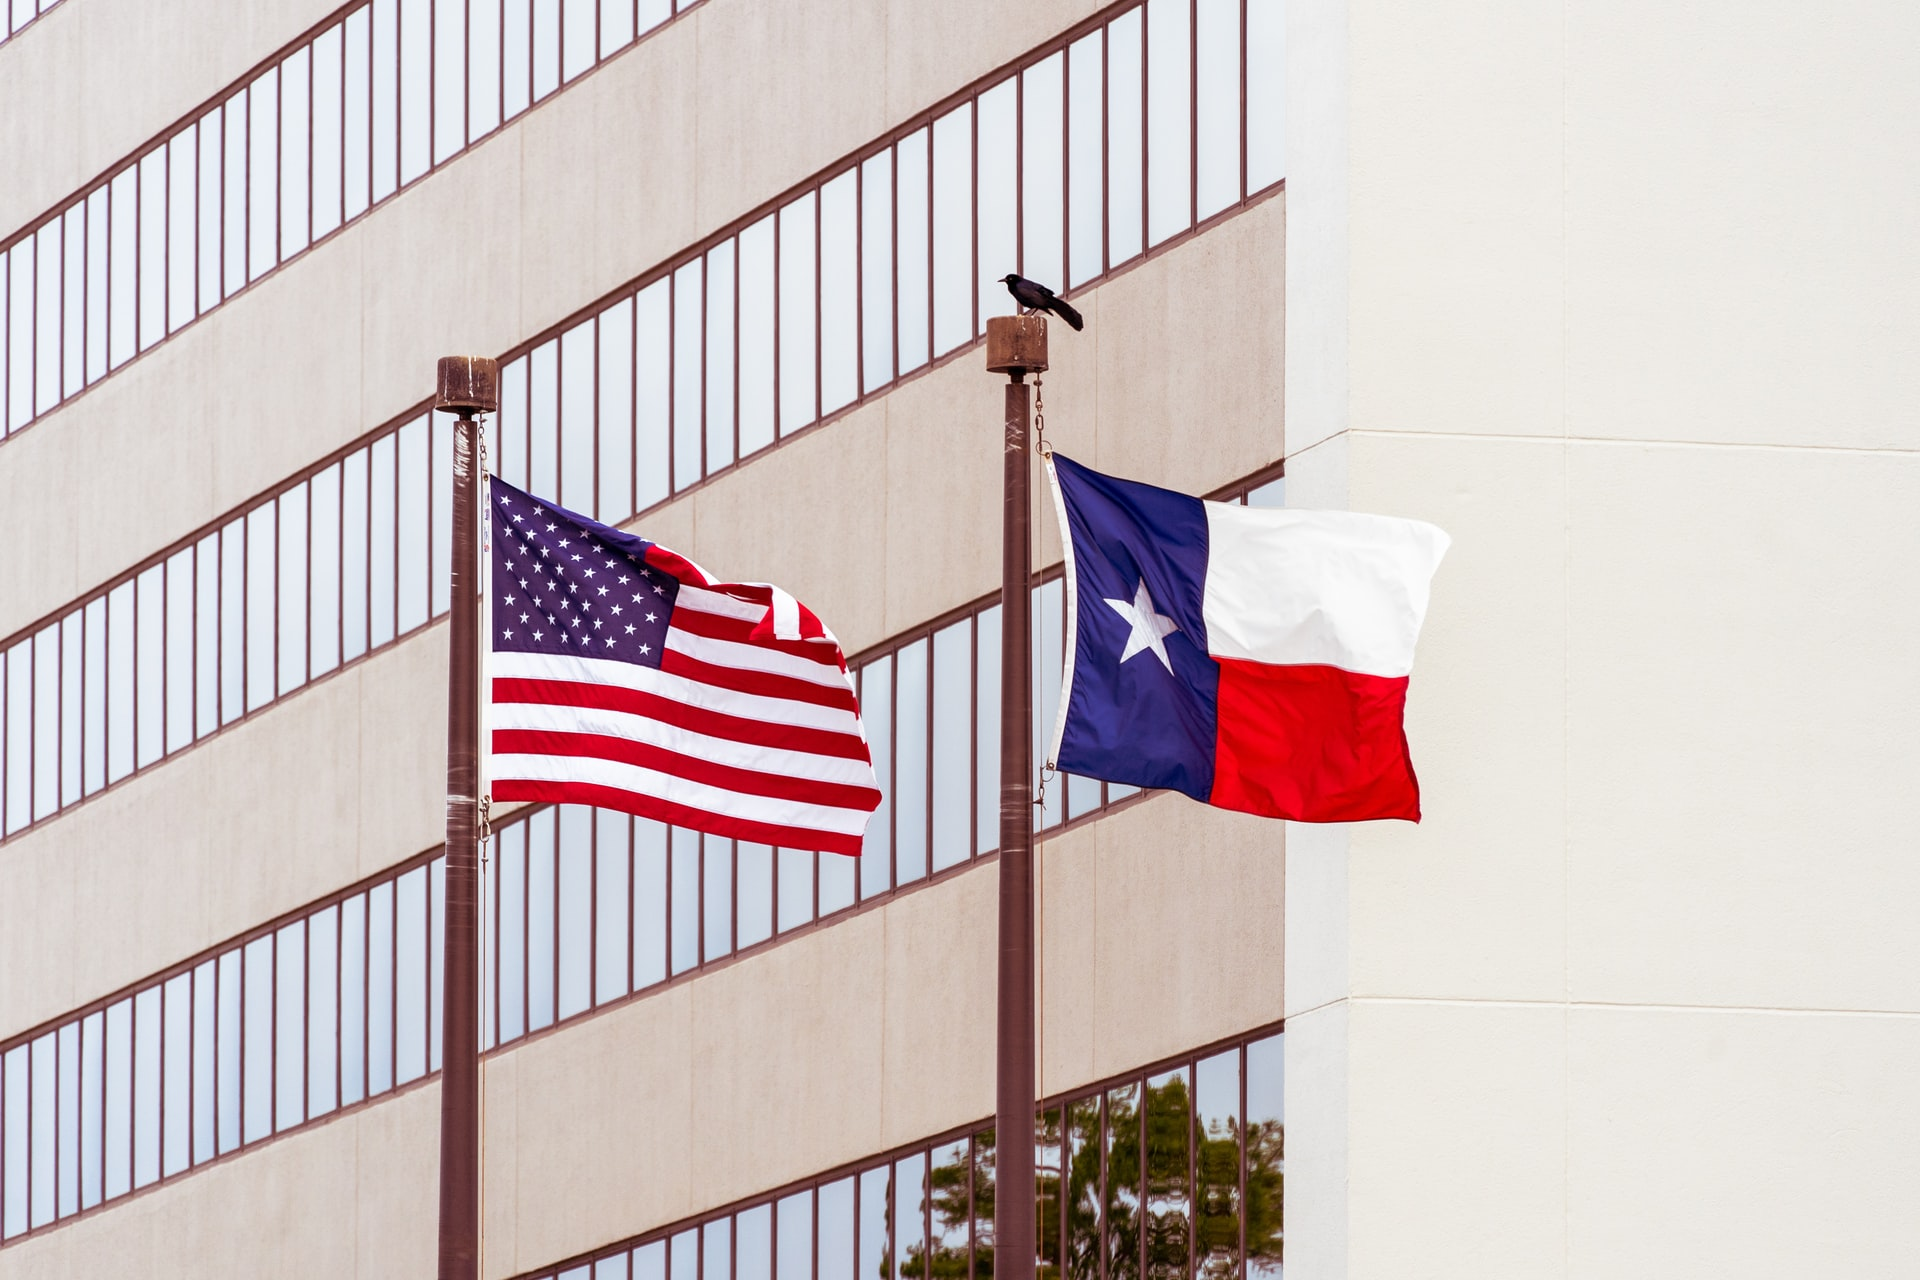 Why is Texas the only state that can fly its flag